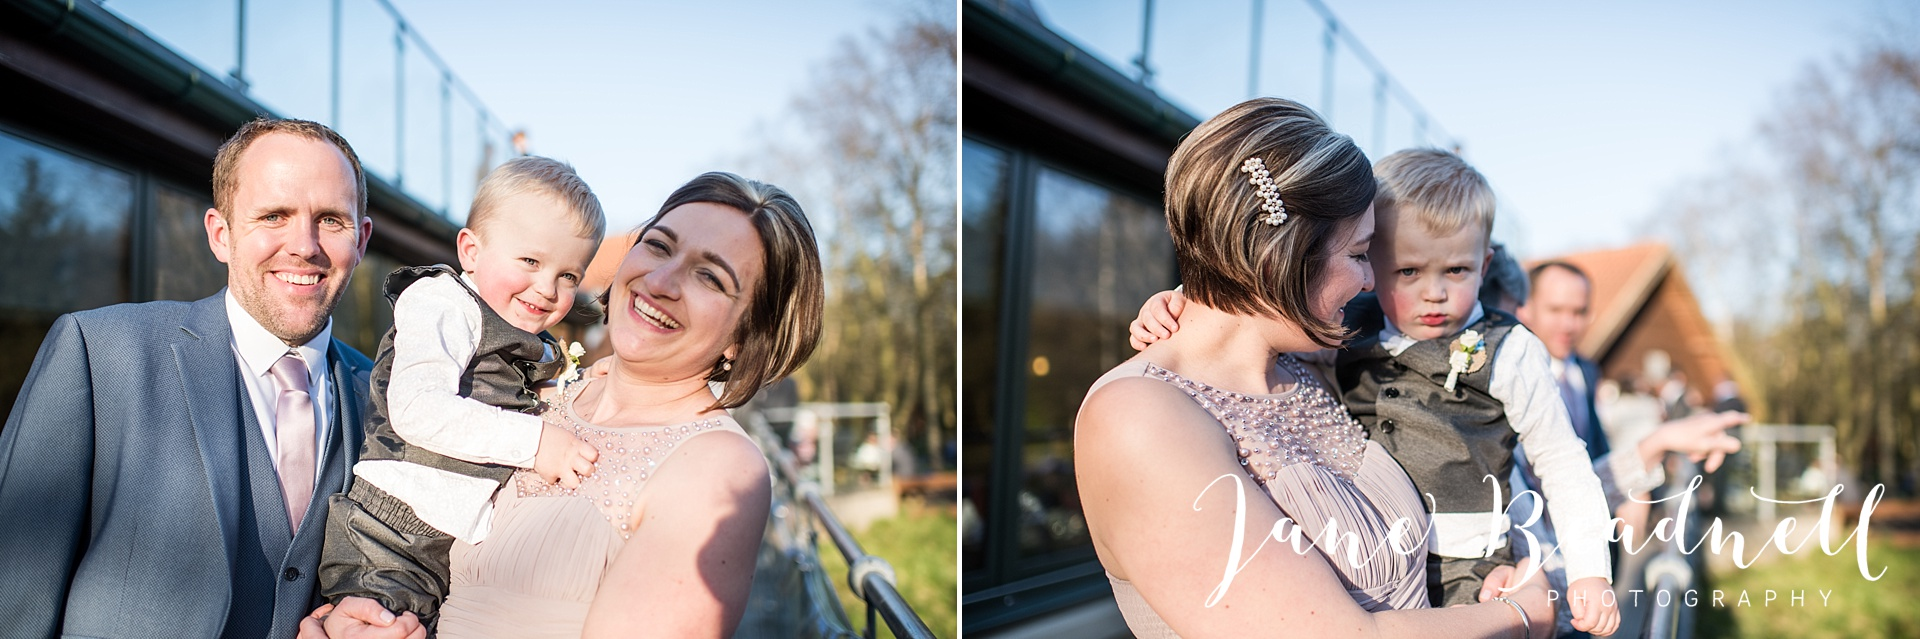 Otley Chevin Lodge wedding photography by Jane Beadnell Photography Leeds_0163